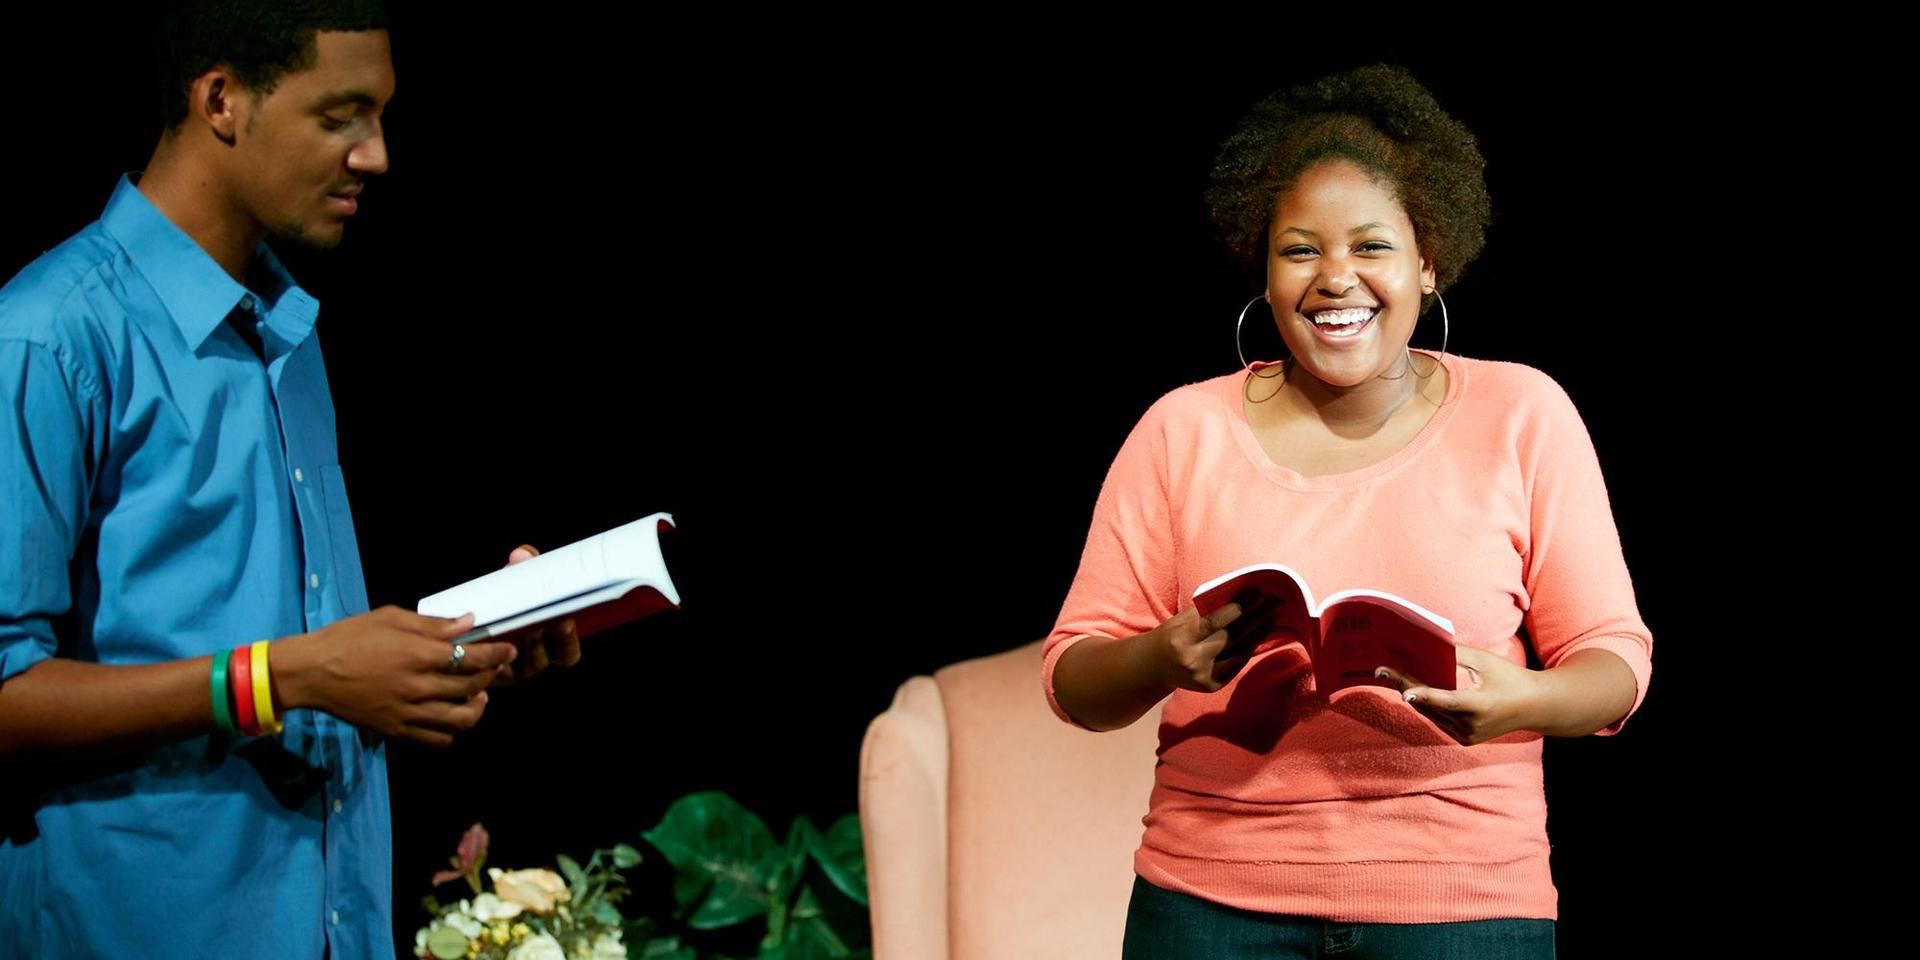 Two students rehearse a scene using scripts.